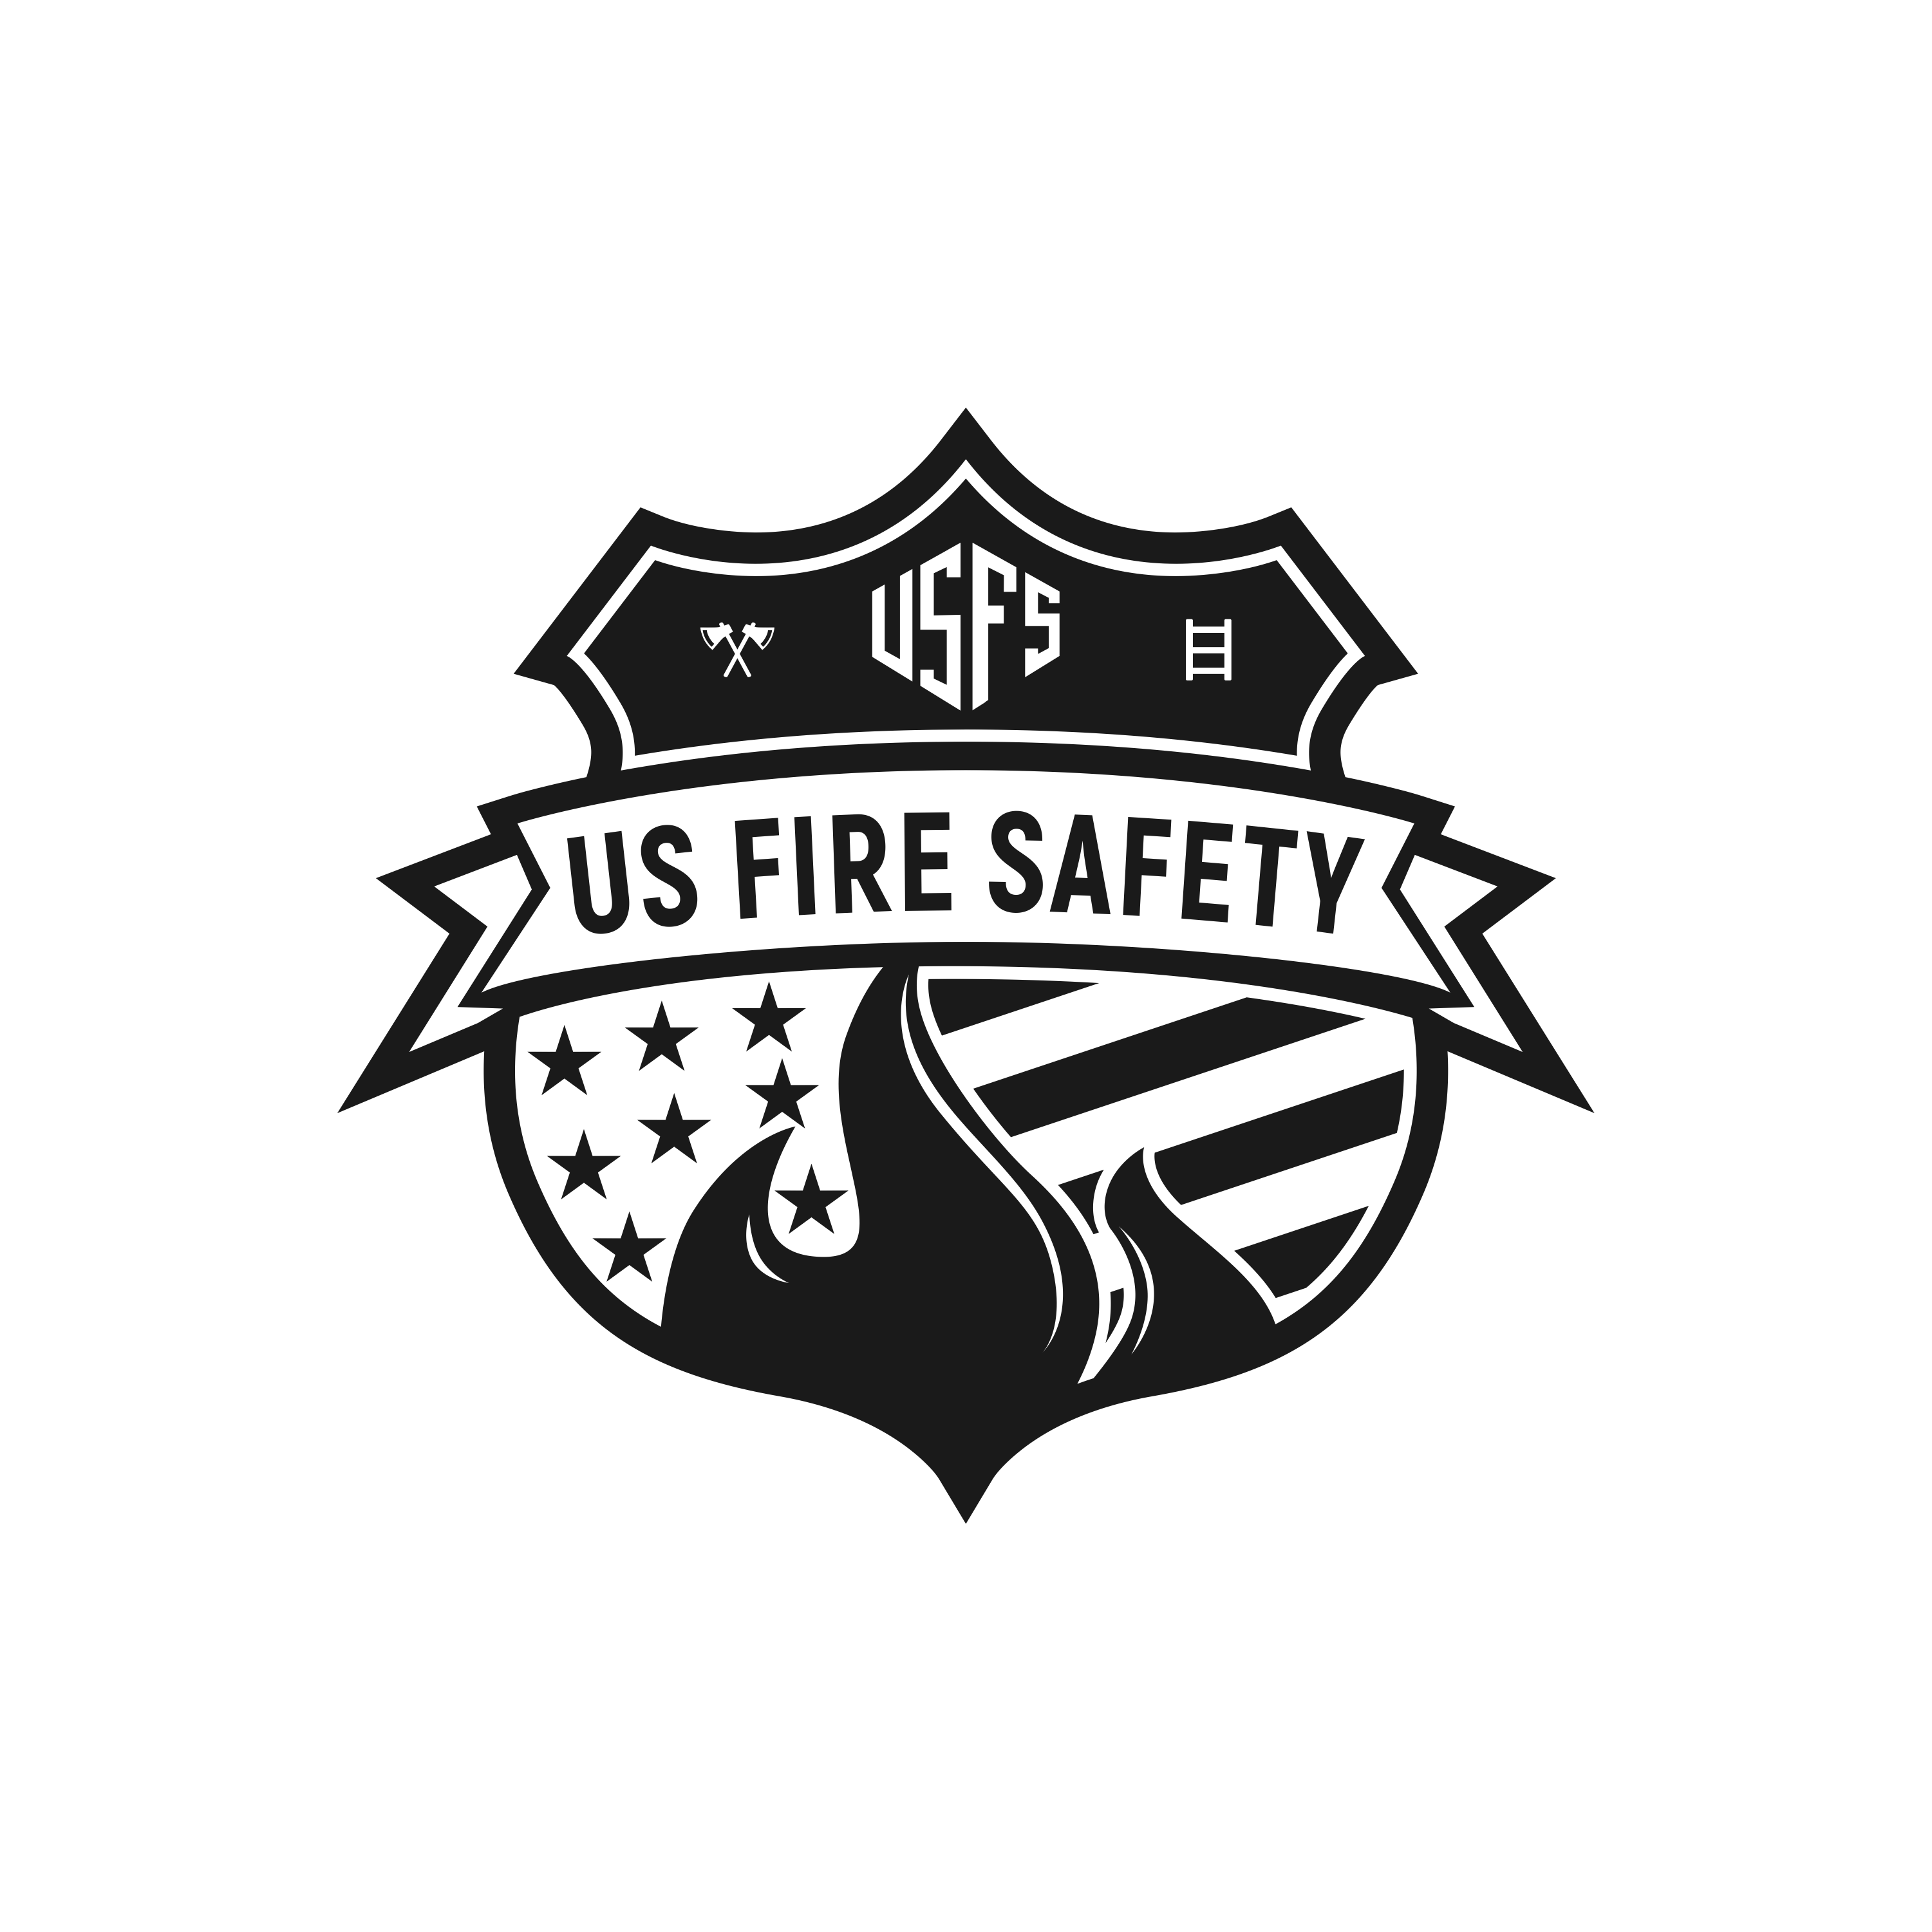 United States Fire Safety is a non-profit organization bringing fire safety to children in all households.